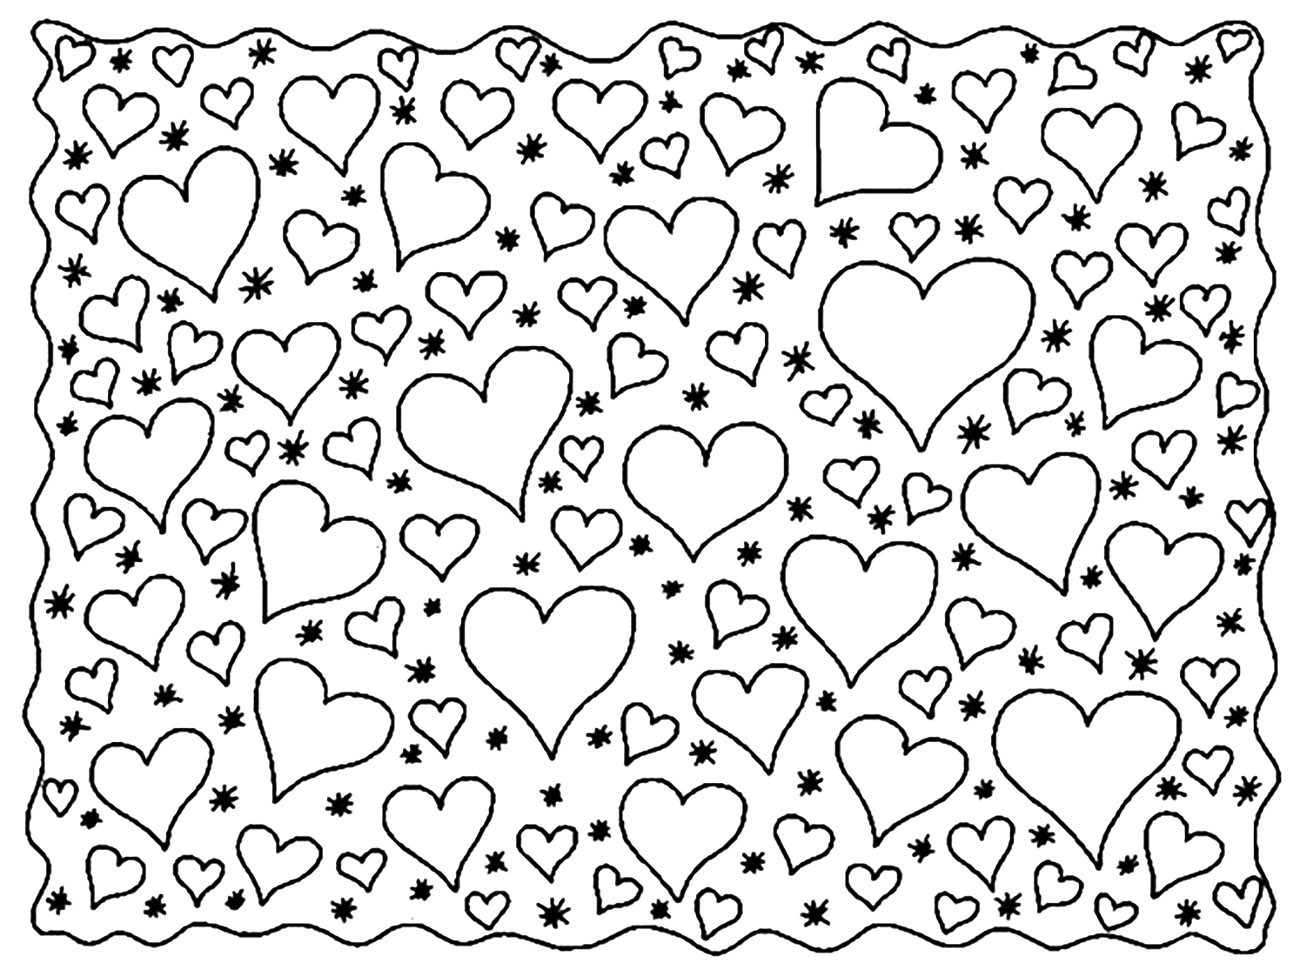 hearts coloring page coloring pages hearts free printable coloring pages for coloring page hearts